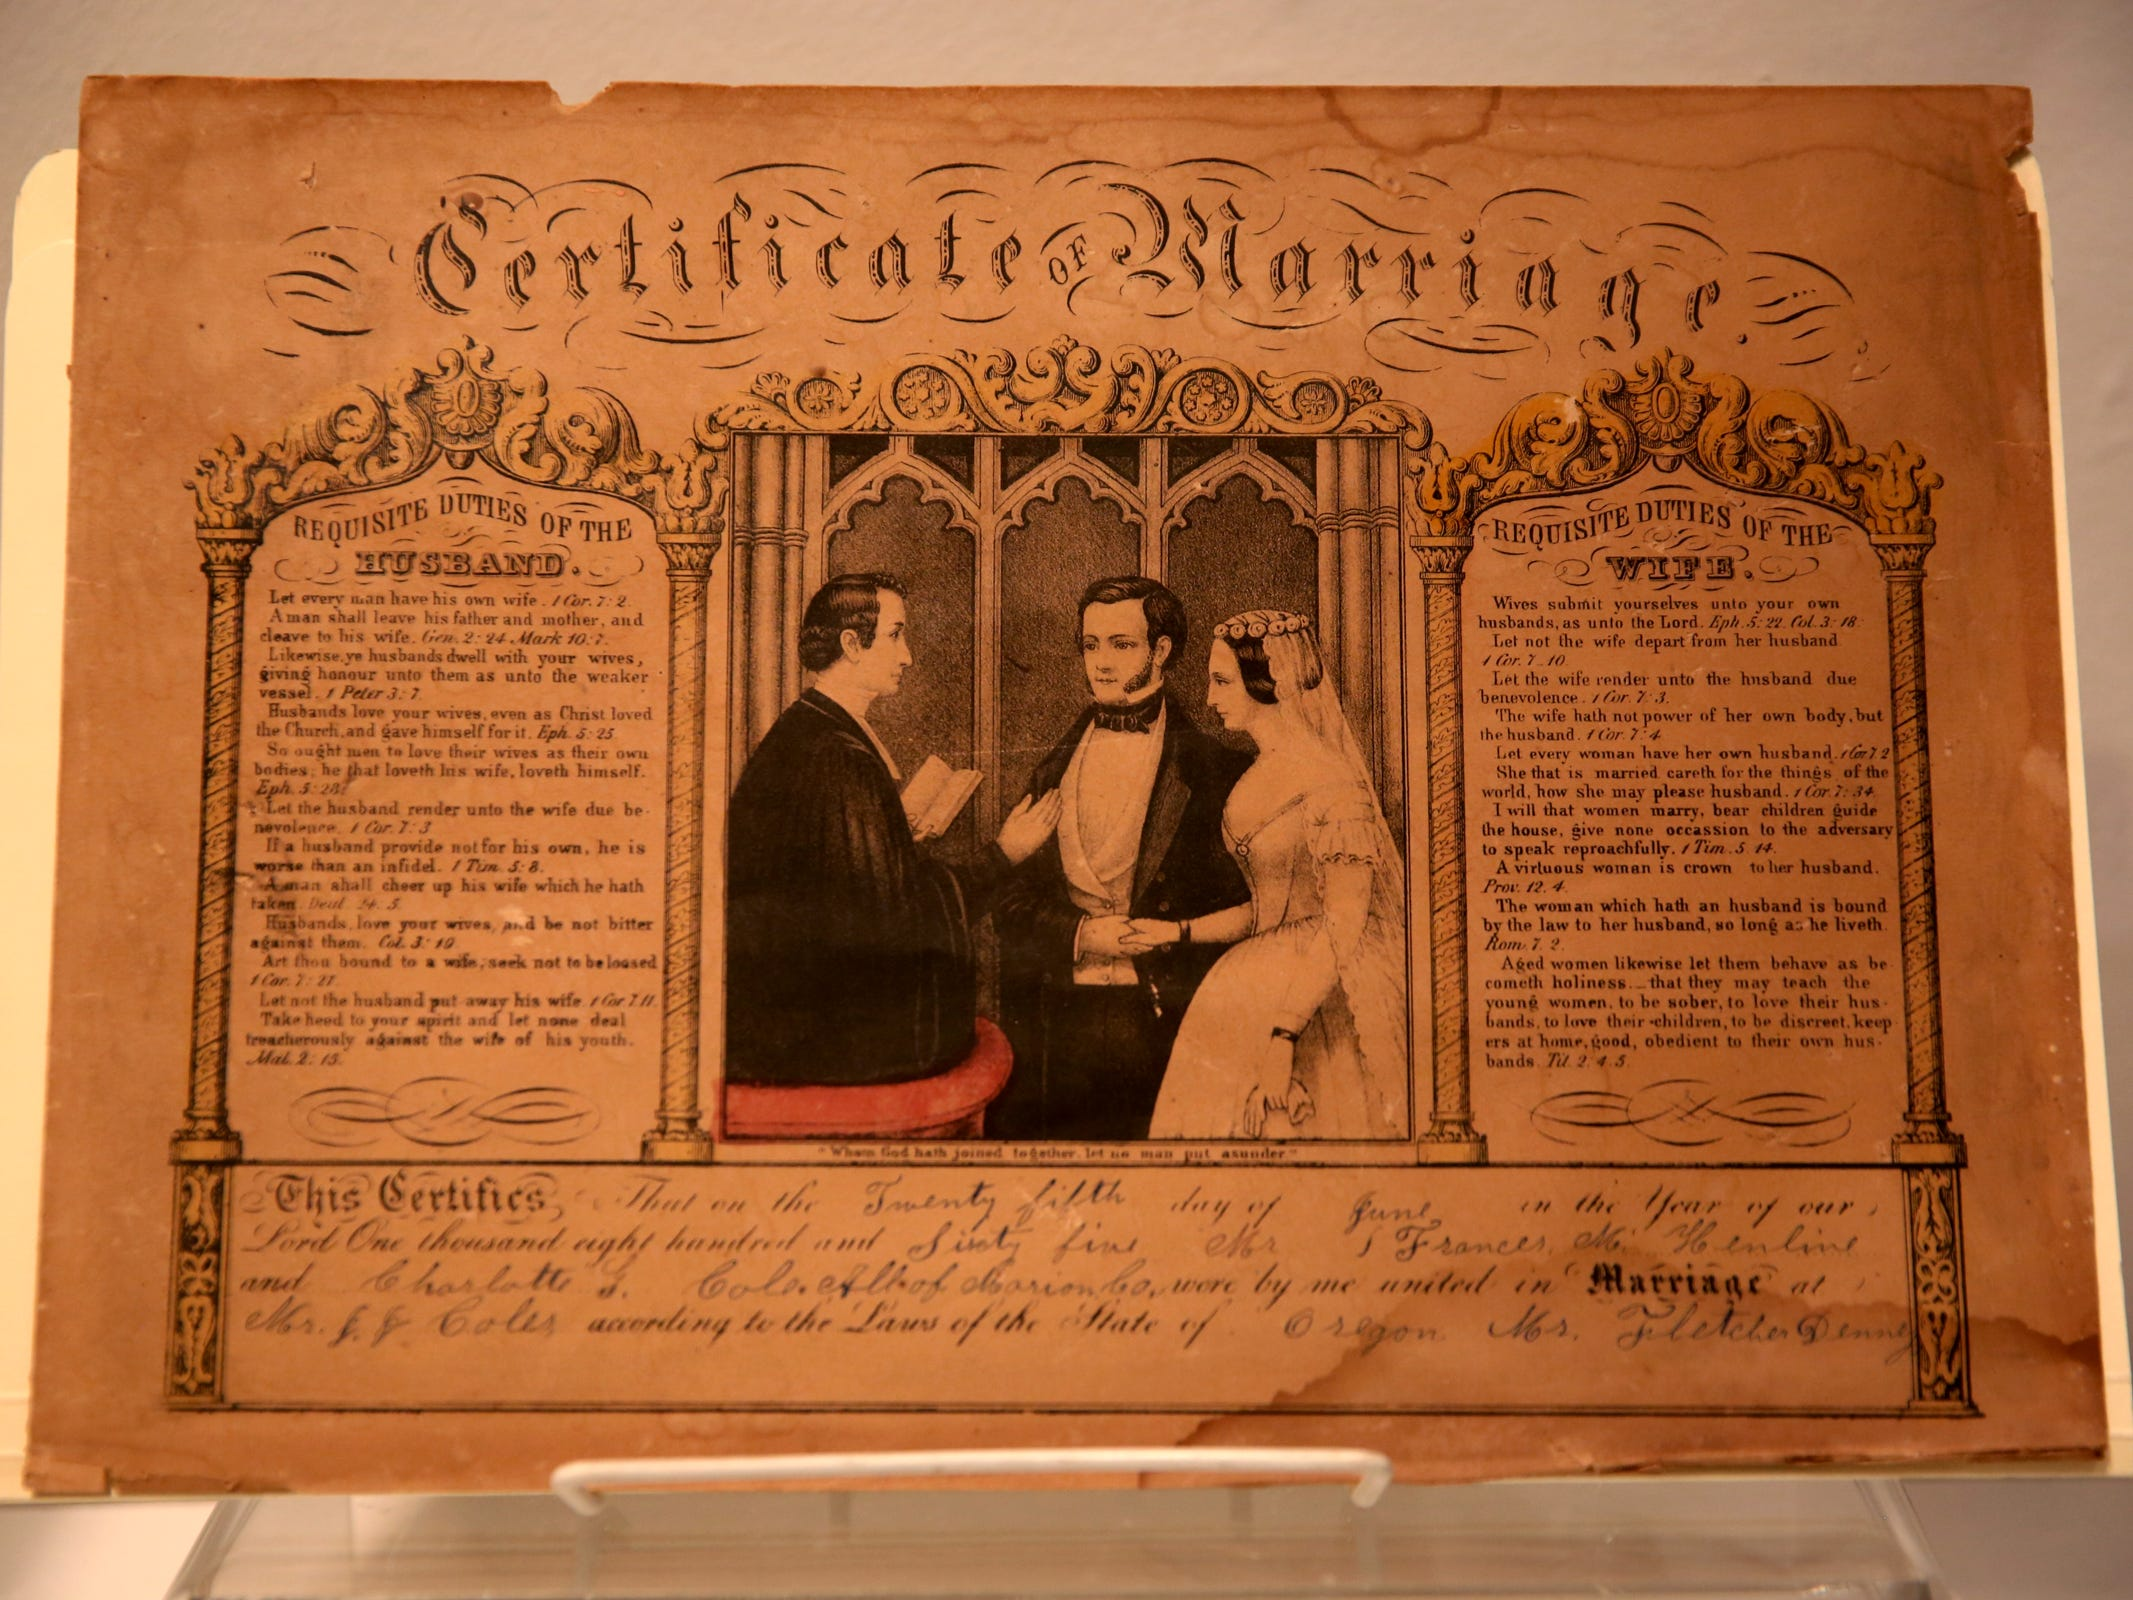 A marriage certificate from 1865, part of the Romance: Stories of Love and Passion in the Mid-Willamette Valley exhibit running through April 20 at the Willamette Heritage Center in Salem on Thursday, Jan. 31, 2019.